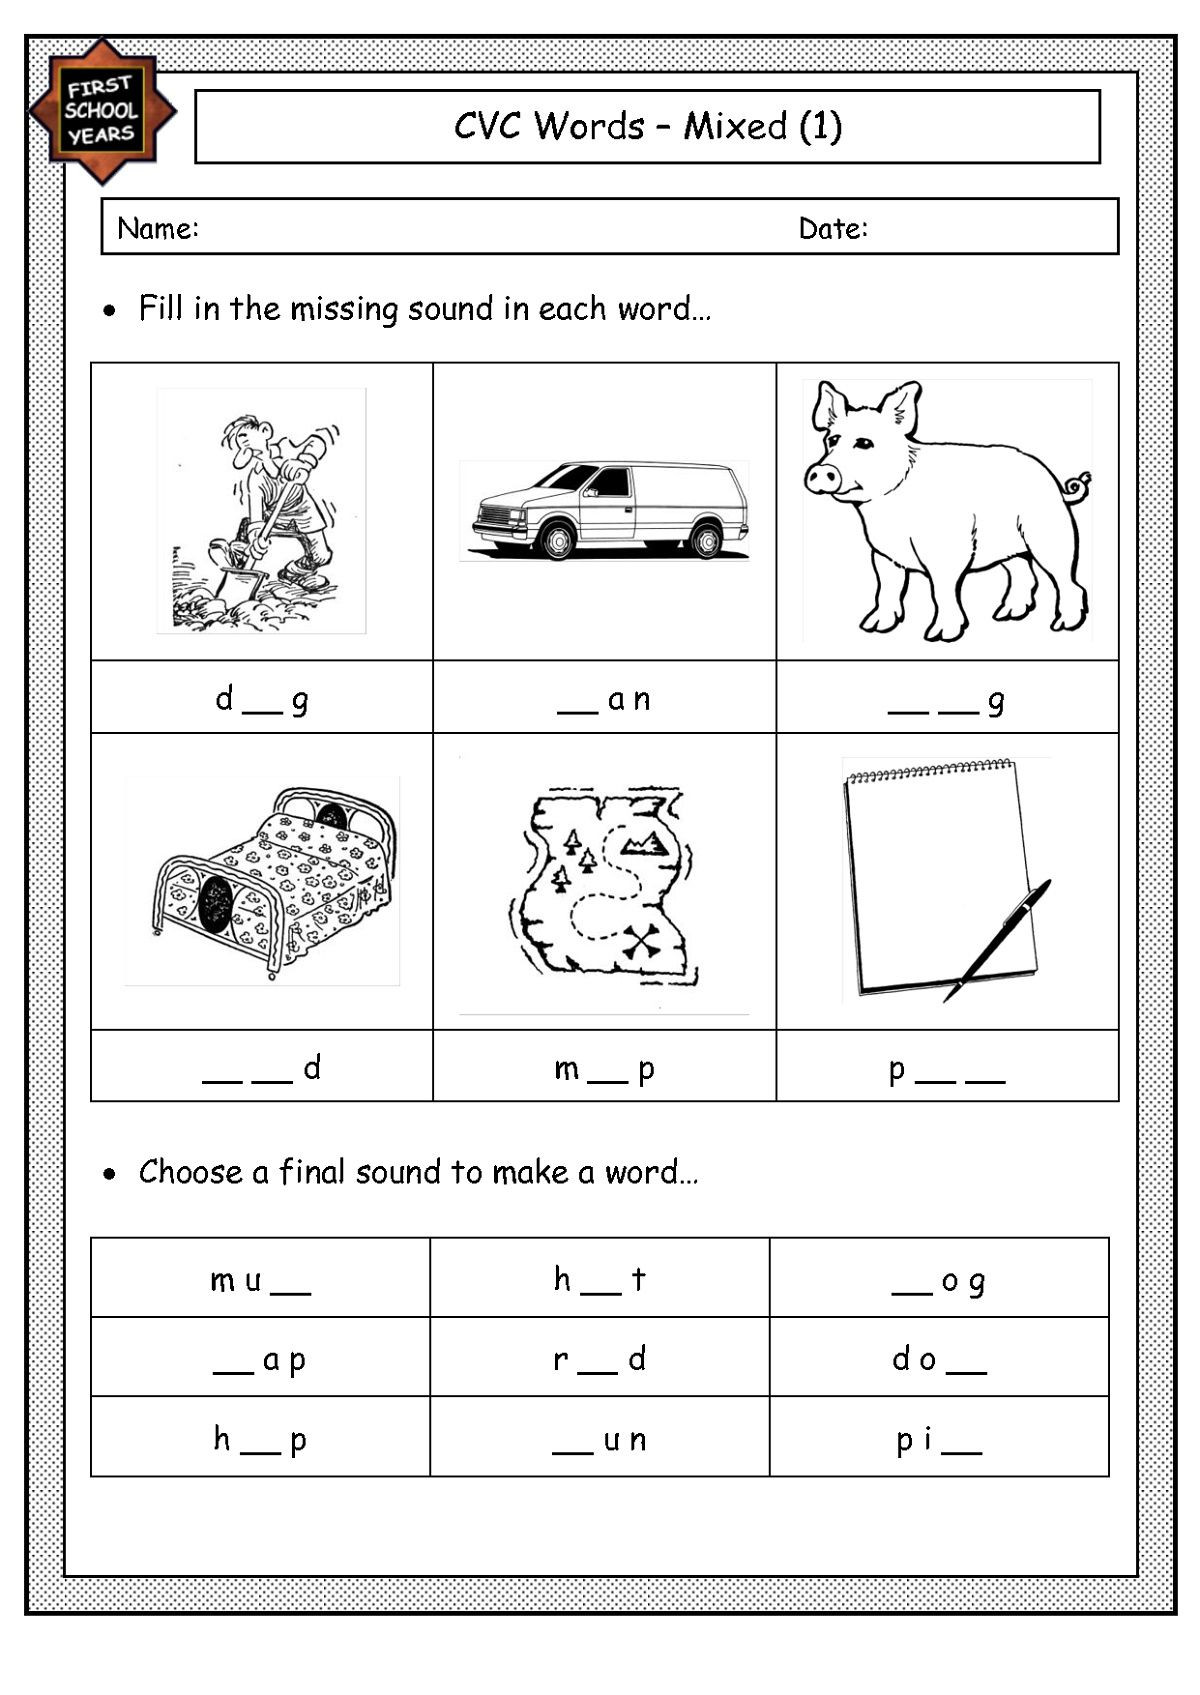 Mammal Worksheets First Grade First Grade Worksheets In 2020